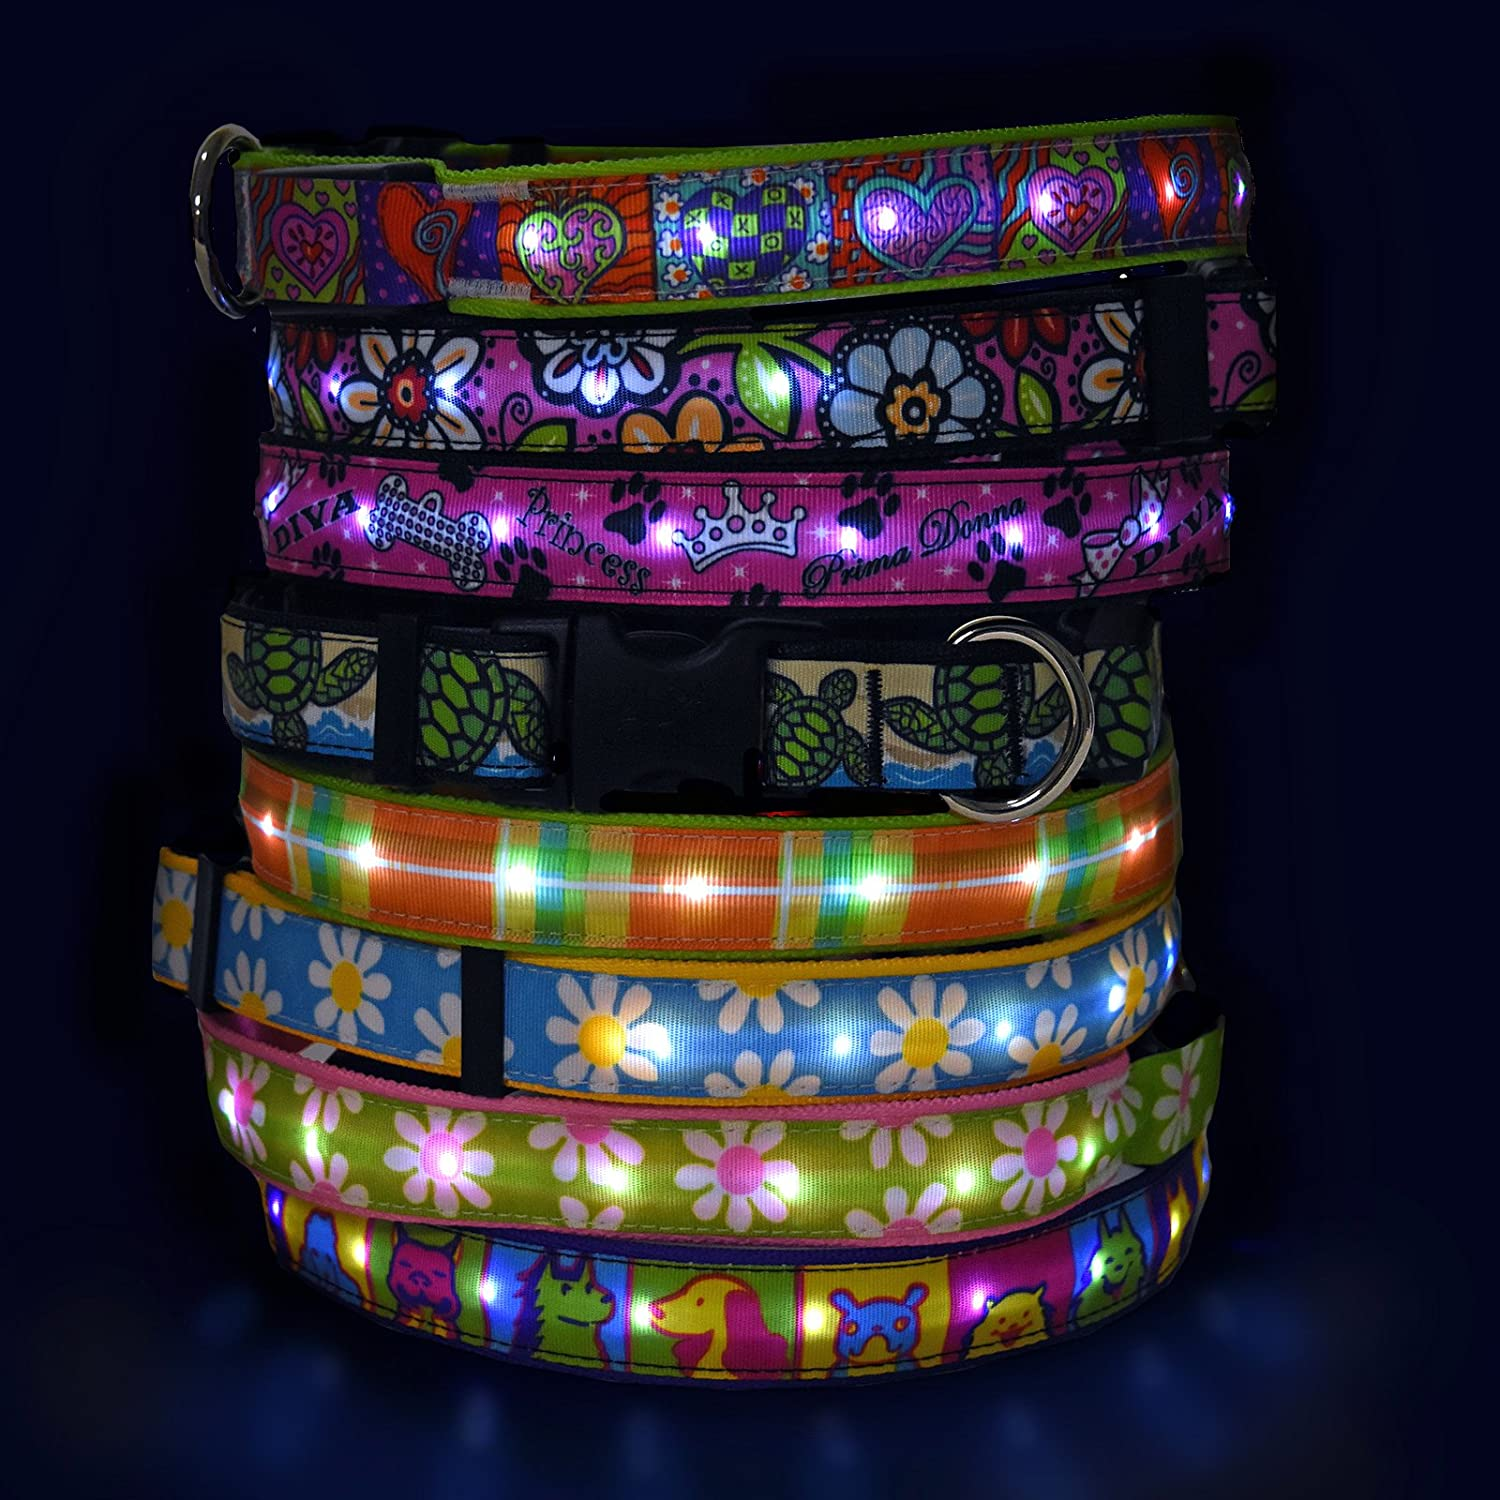 Large 19-25 inch Hot Dog Safety Collar Large-Americana US Made LED Light Up Collar with Rechargeable Battery